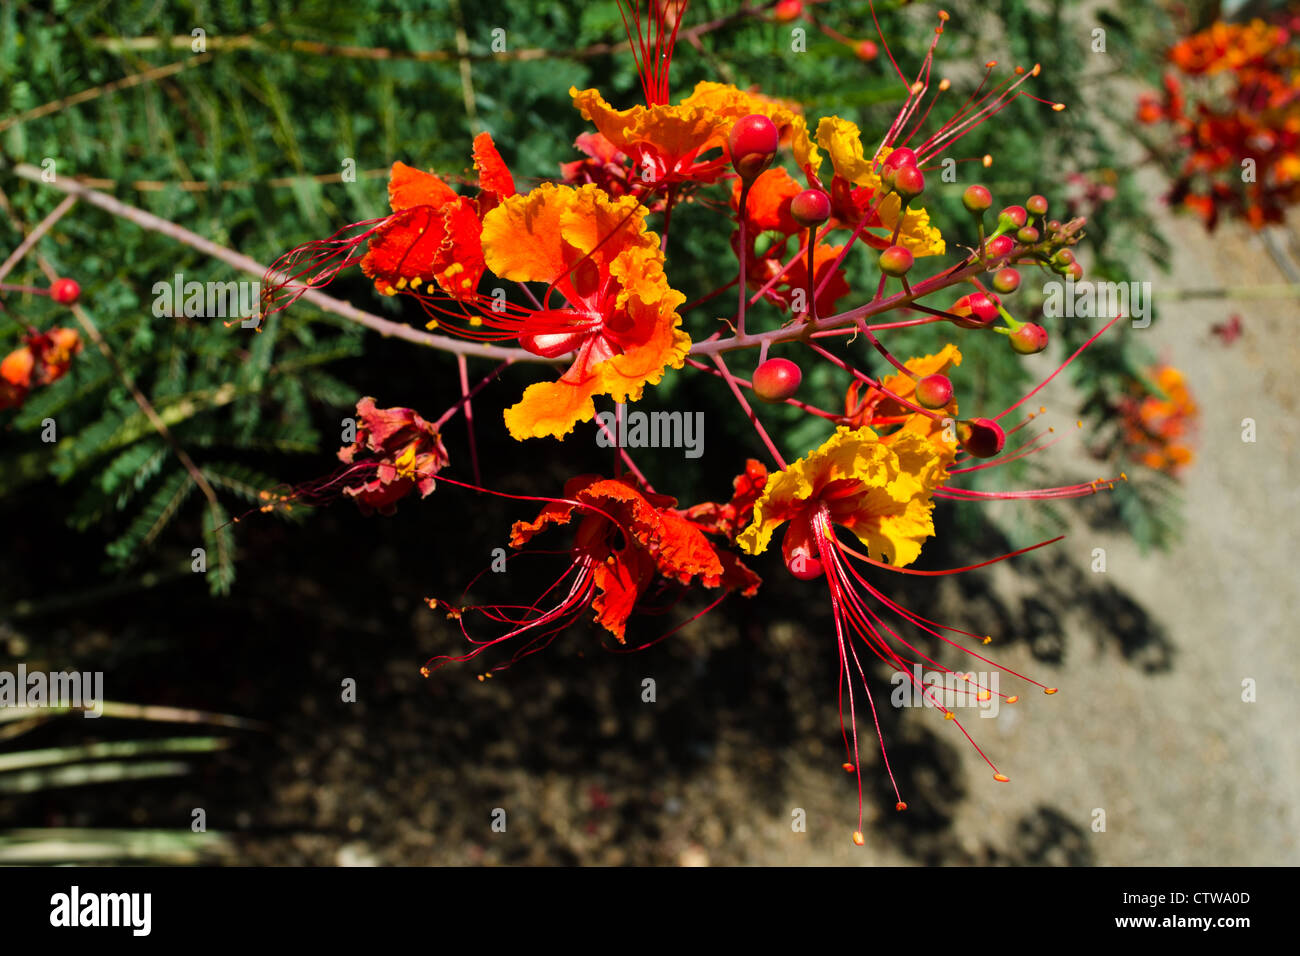 The bright red and yellow flowers of Caesalpinia mexicana, the red bird of paradise - Stock Image